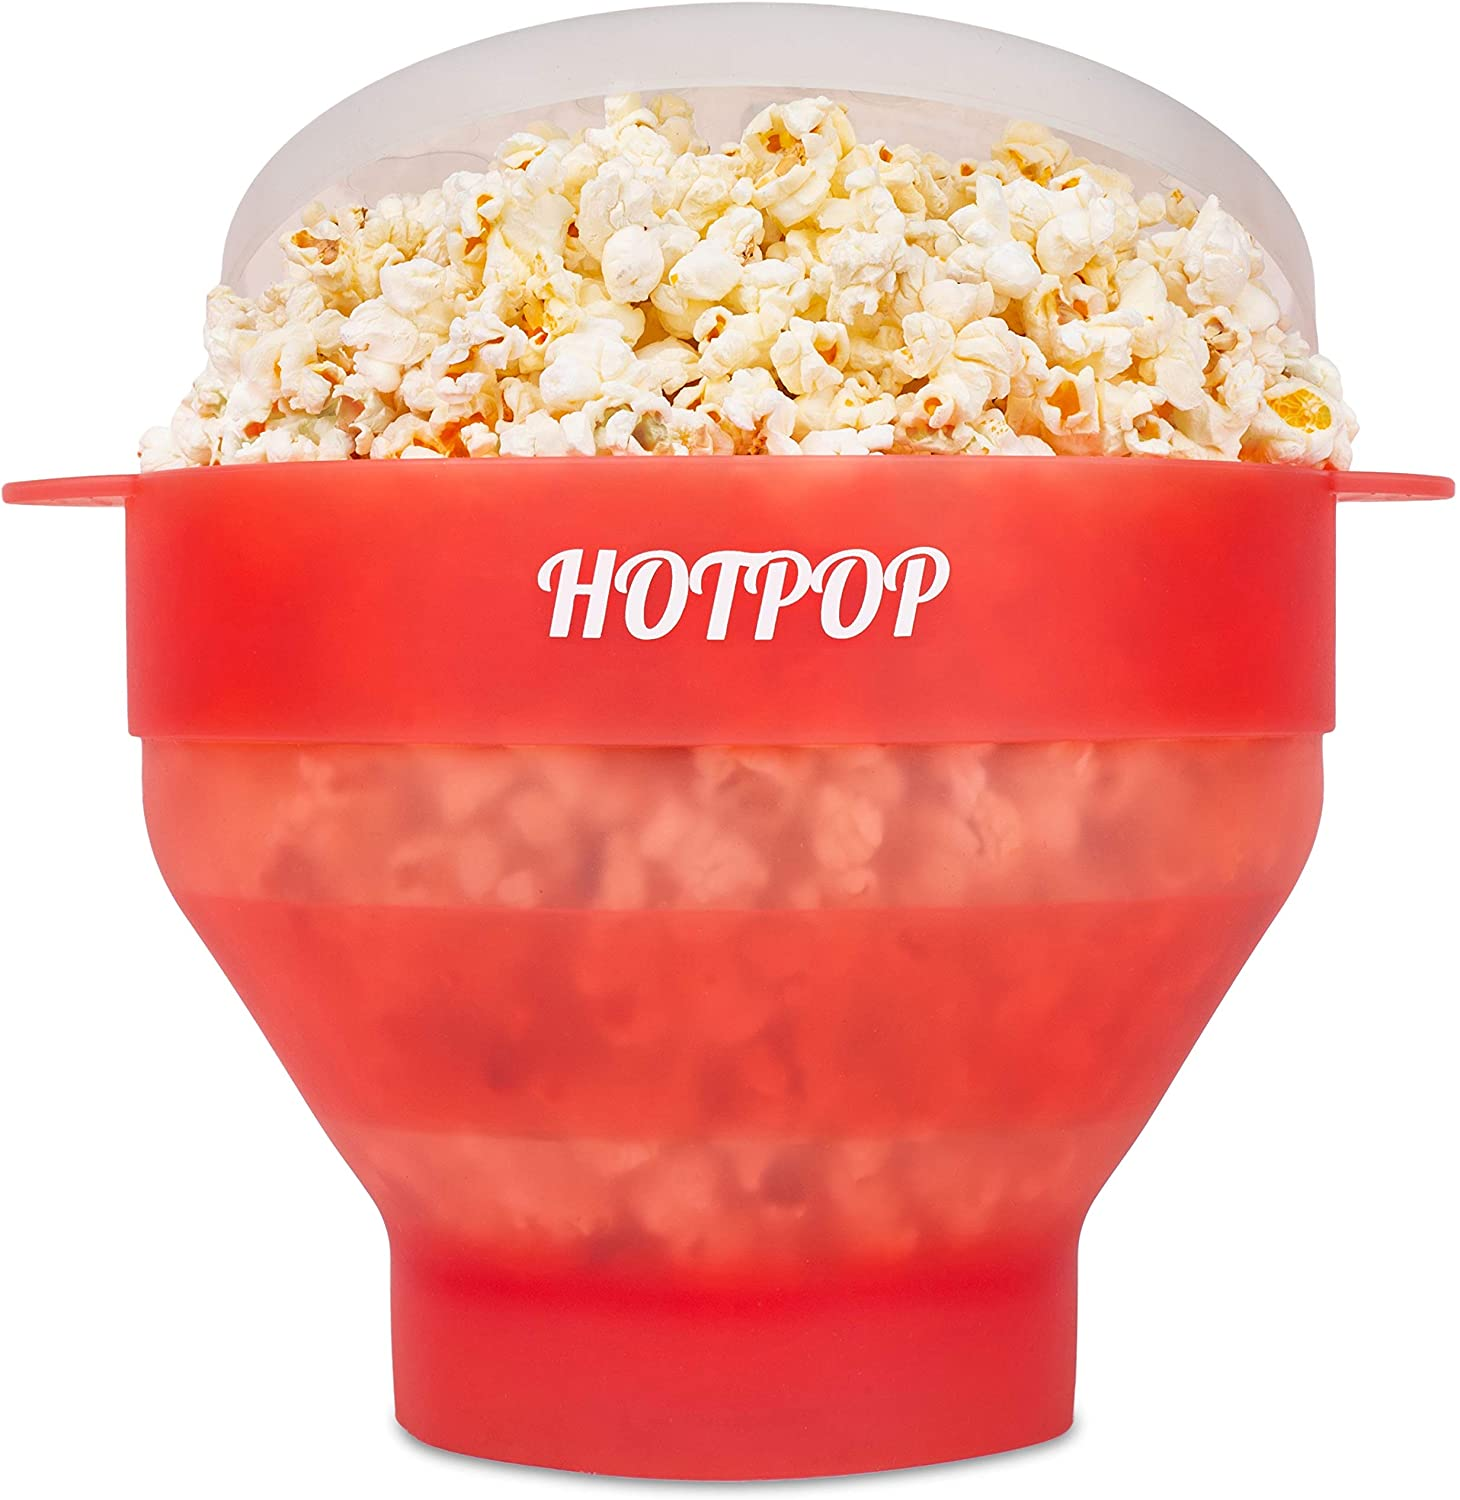 The Original Hotpop Microwave Popcorn Popper, Silicone Popcorn Maker, Collapsible Bowl Bpa Free and Dishwasher Safe - 17 Colors Available (Transparent Red)